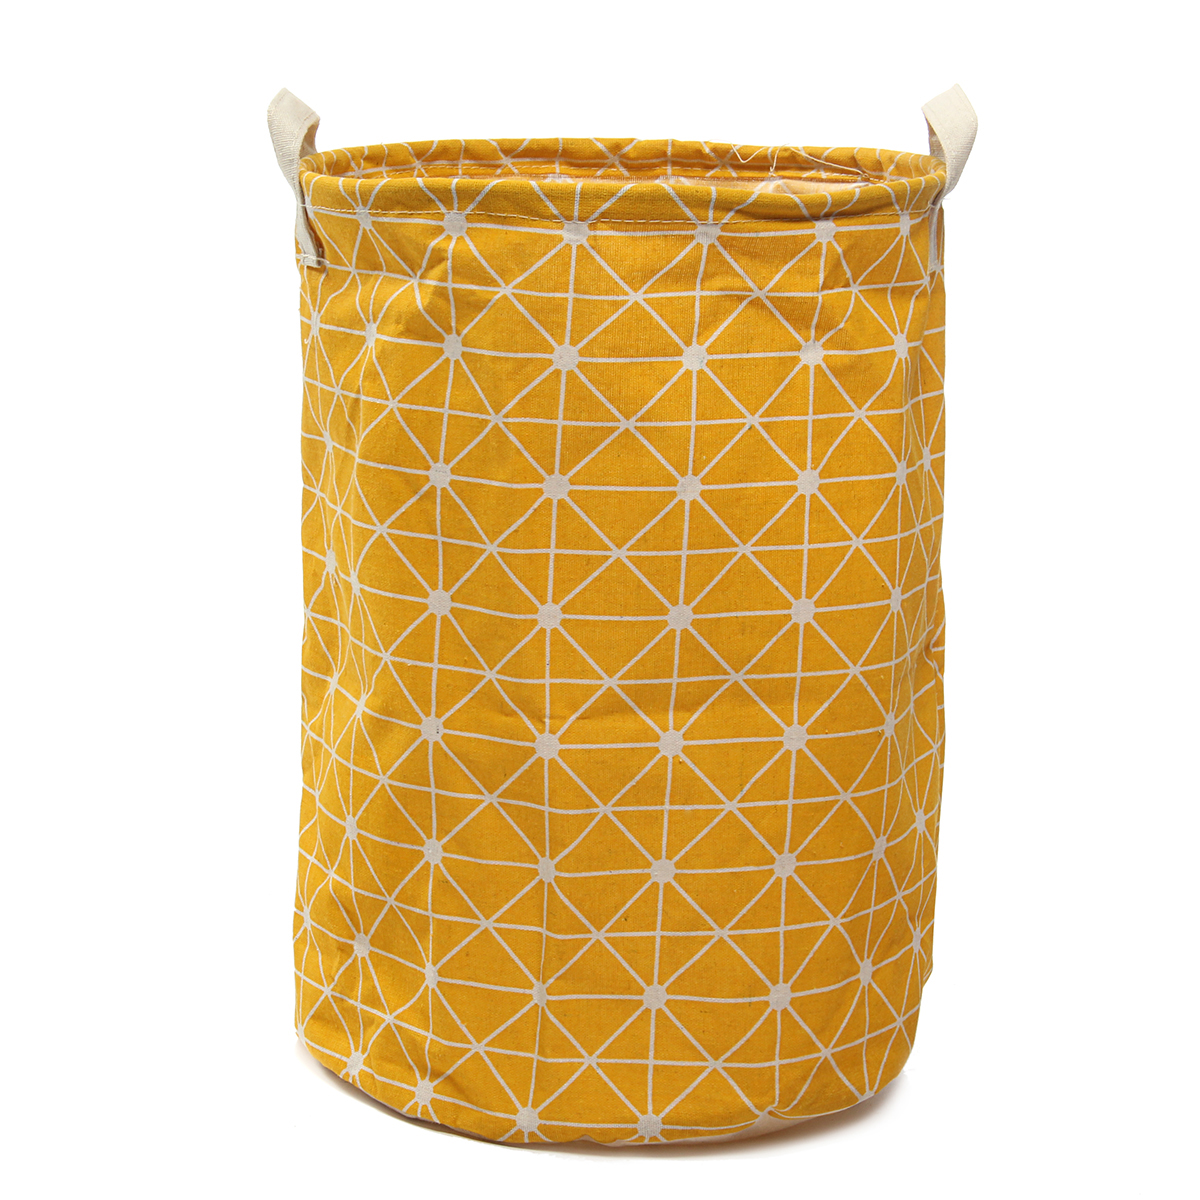 Foldable Dirty Washing Clothes & Toy Laundry Basket Hamper Storage Organizer Bag Cotton Linen Home Household